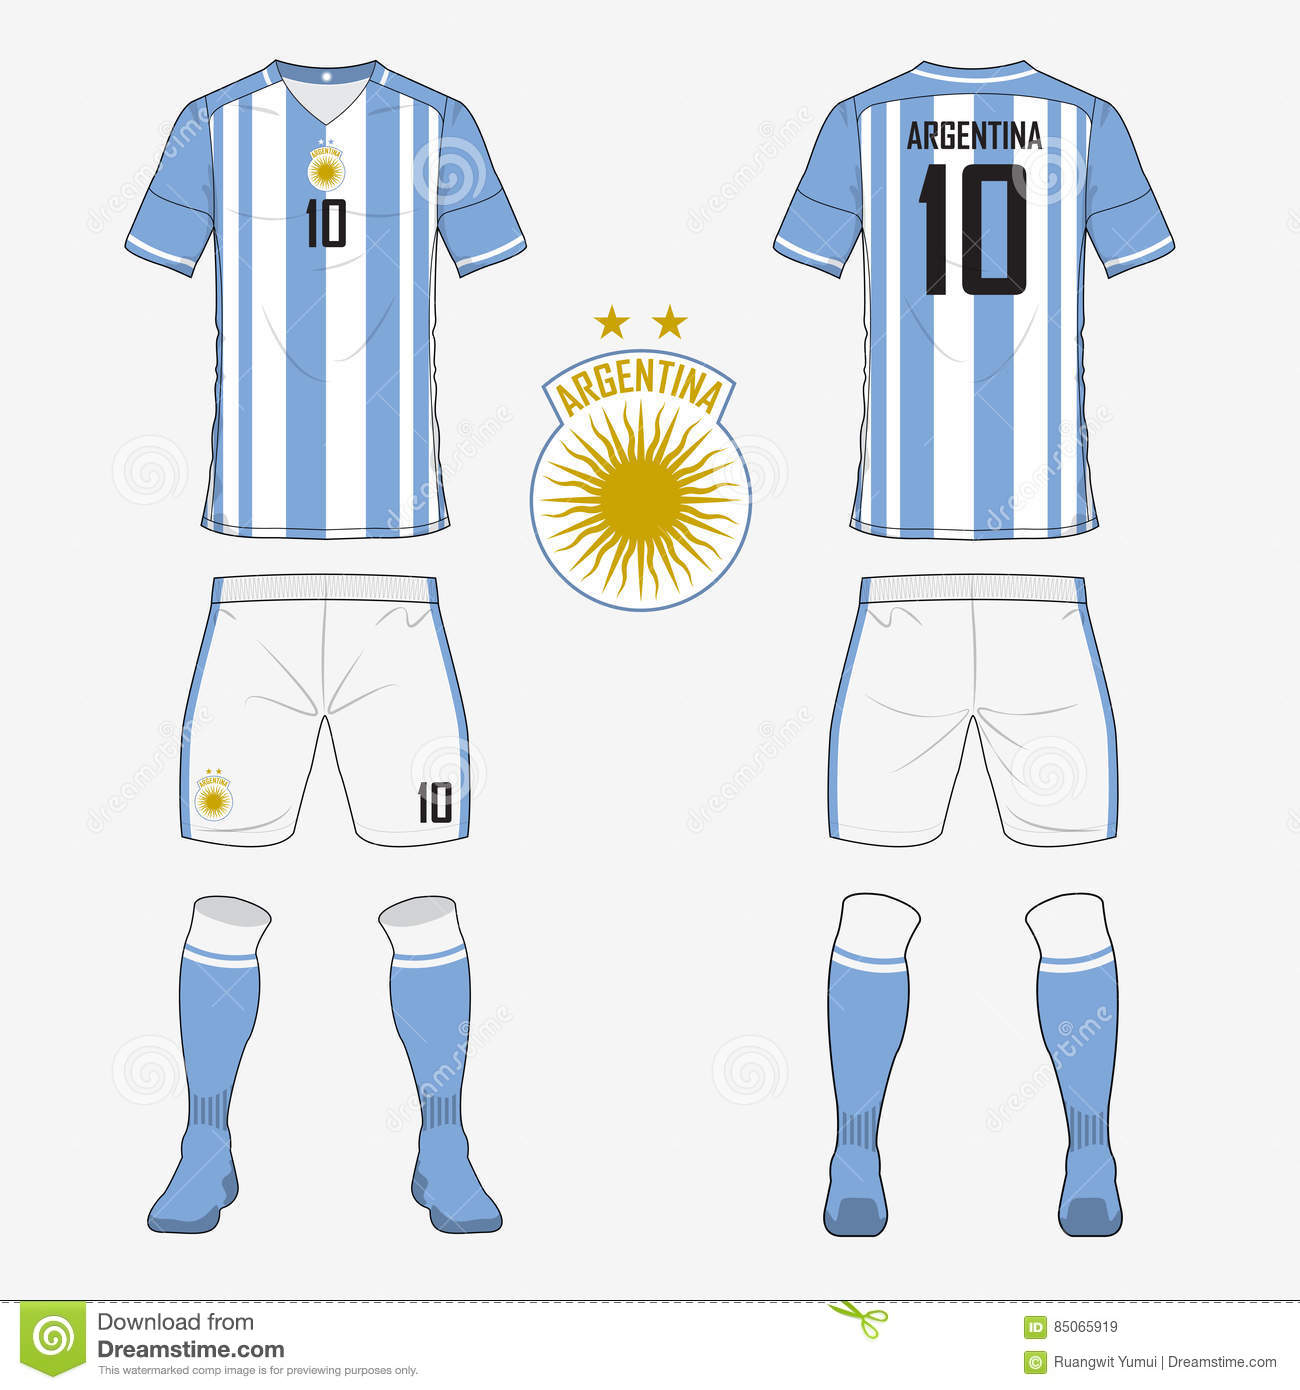 69cdf86f2 Set of soccer jersey or football kit template for Argentina national  football team.